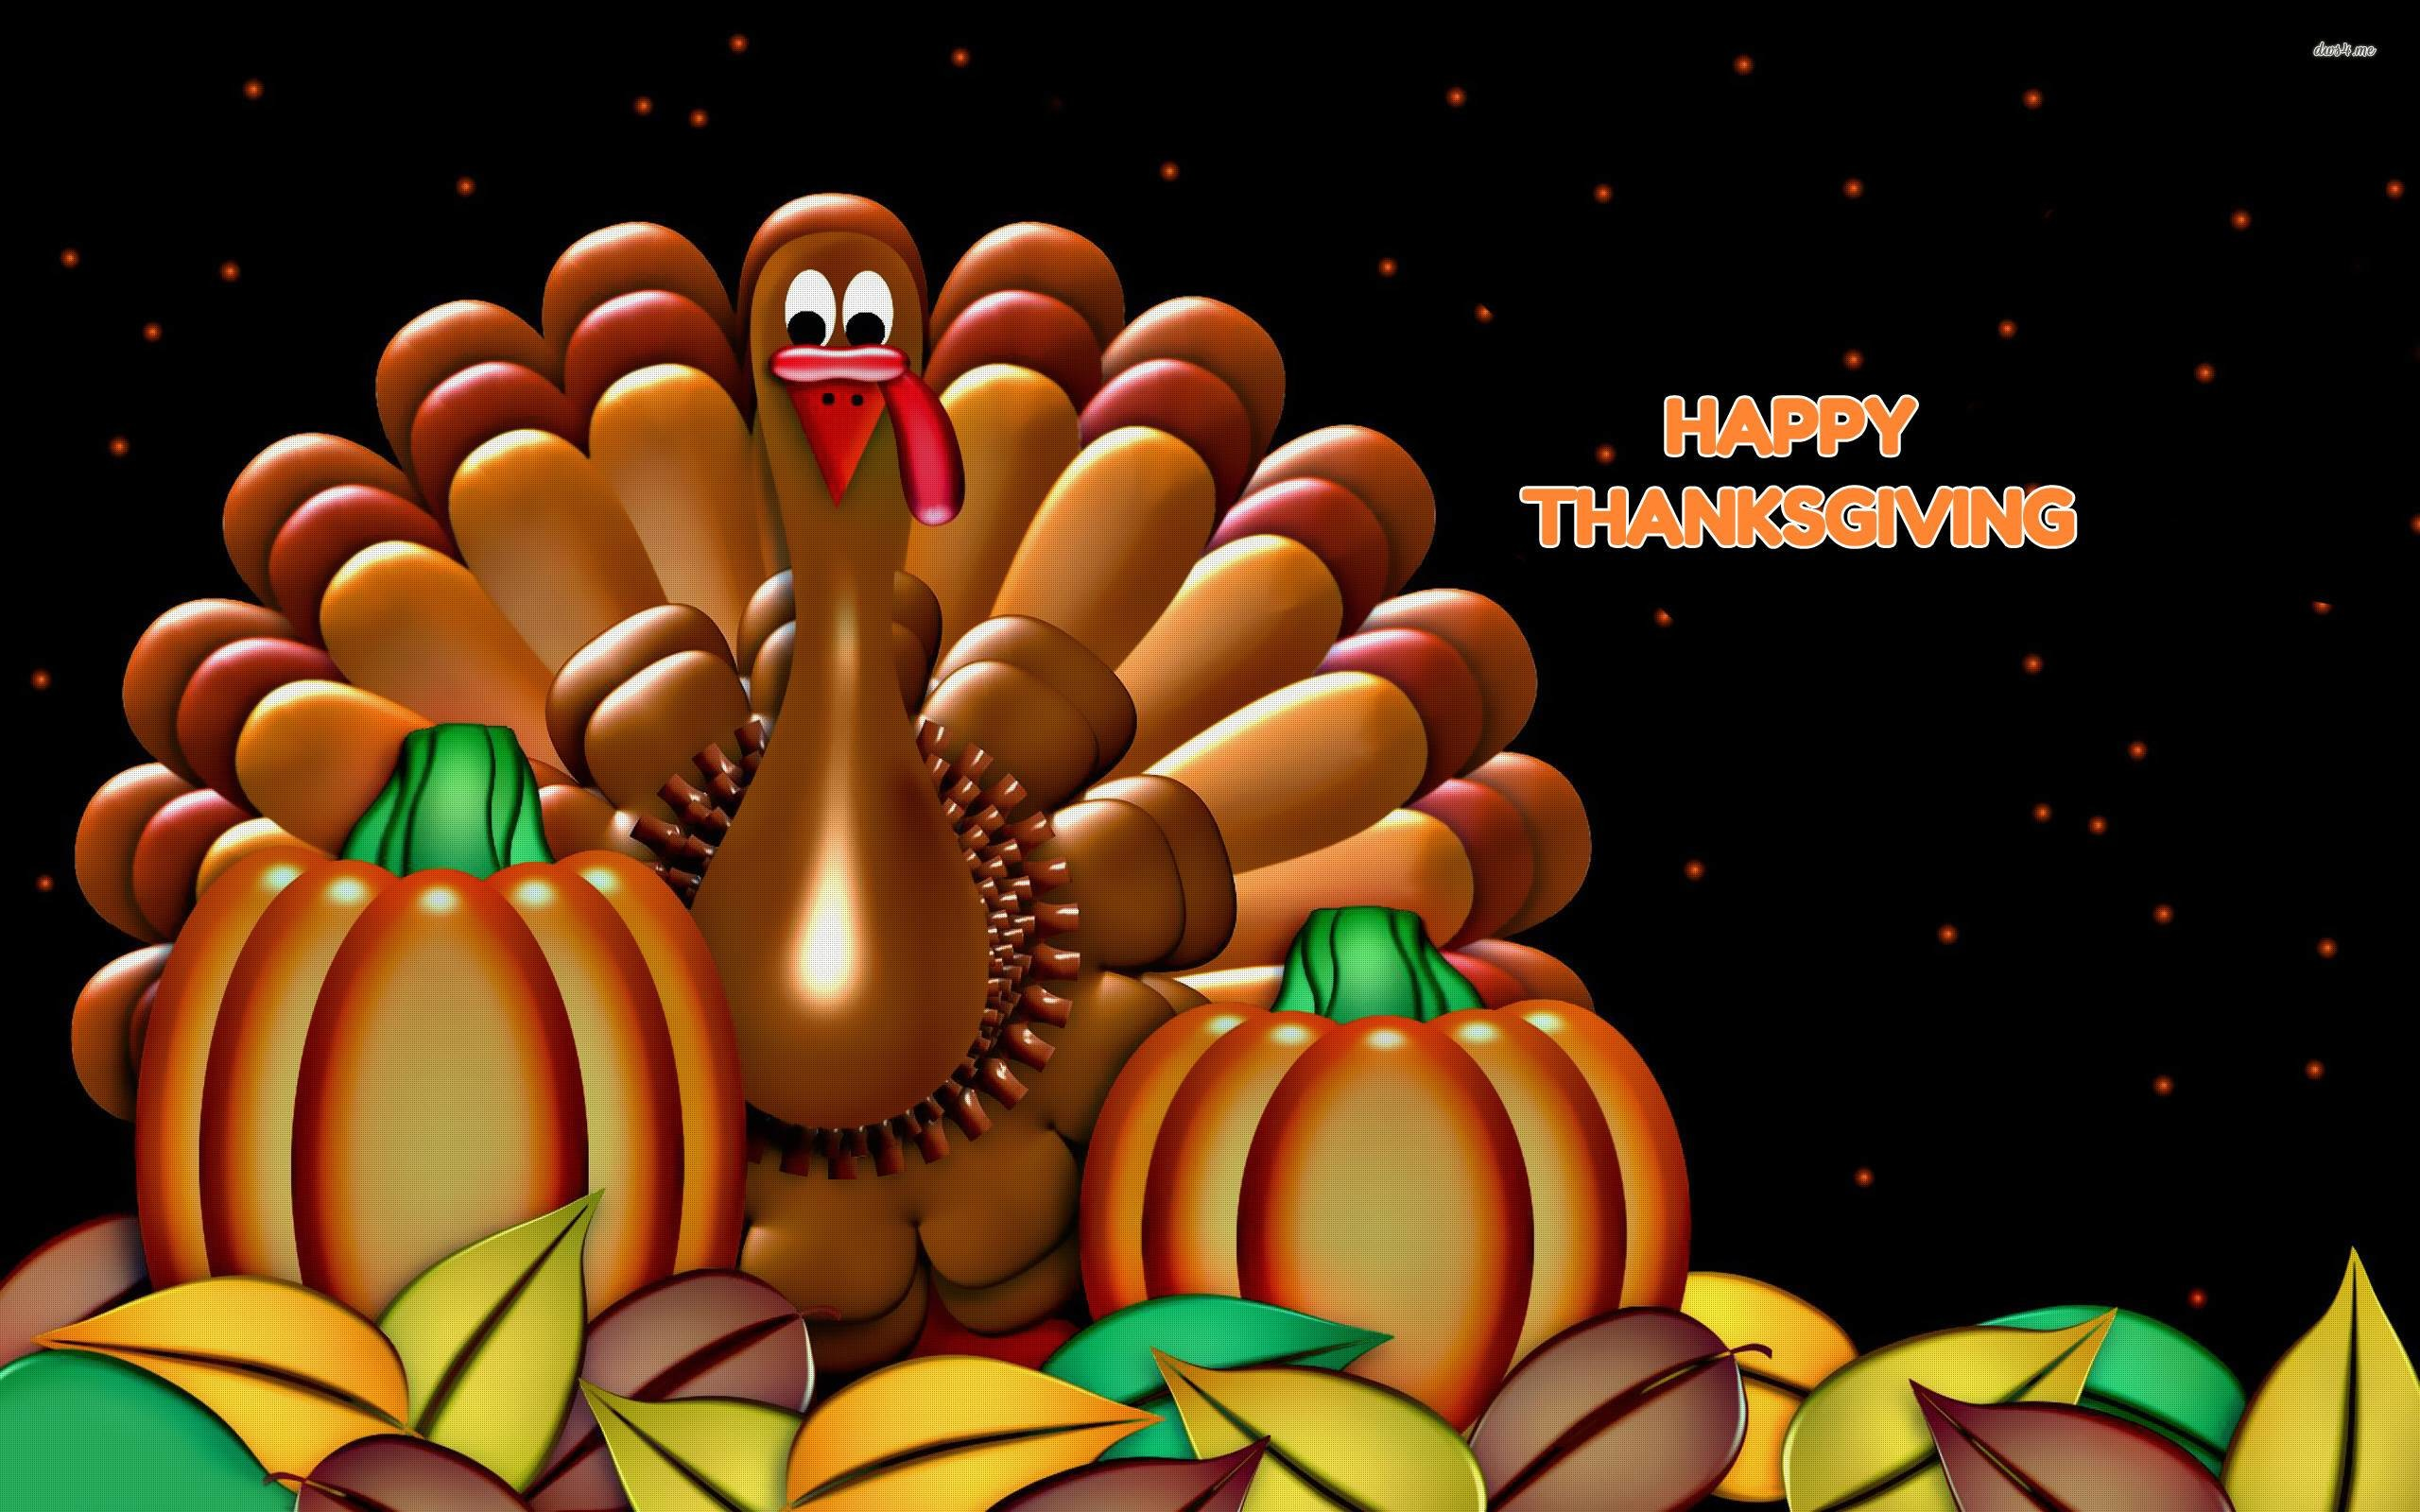 2560x1600 Happy Thanksgiving wallpaper - Holiday wallpapers - #